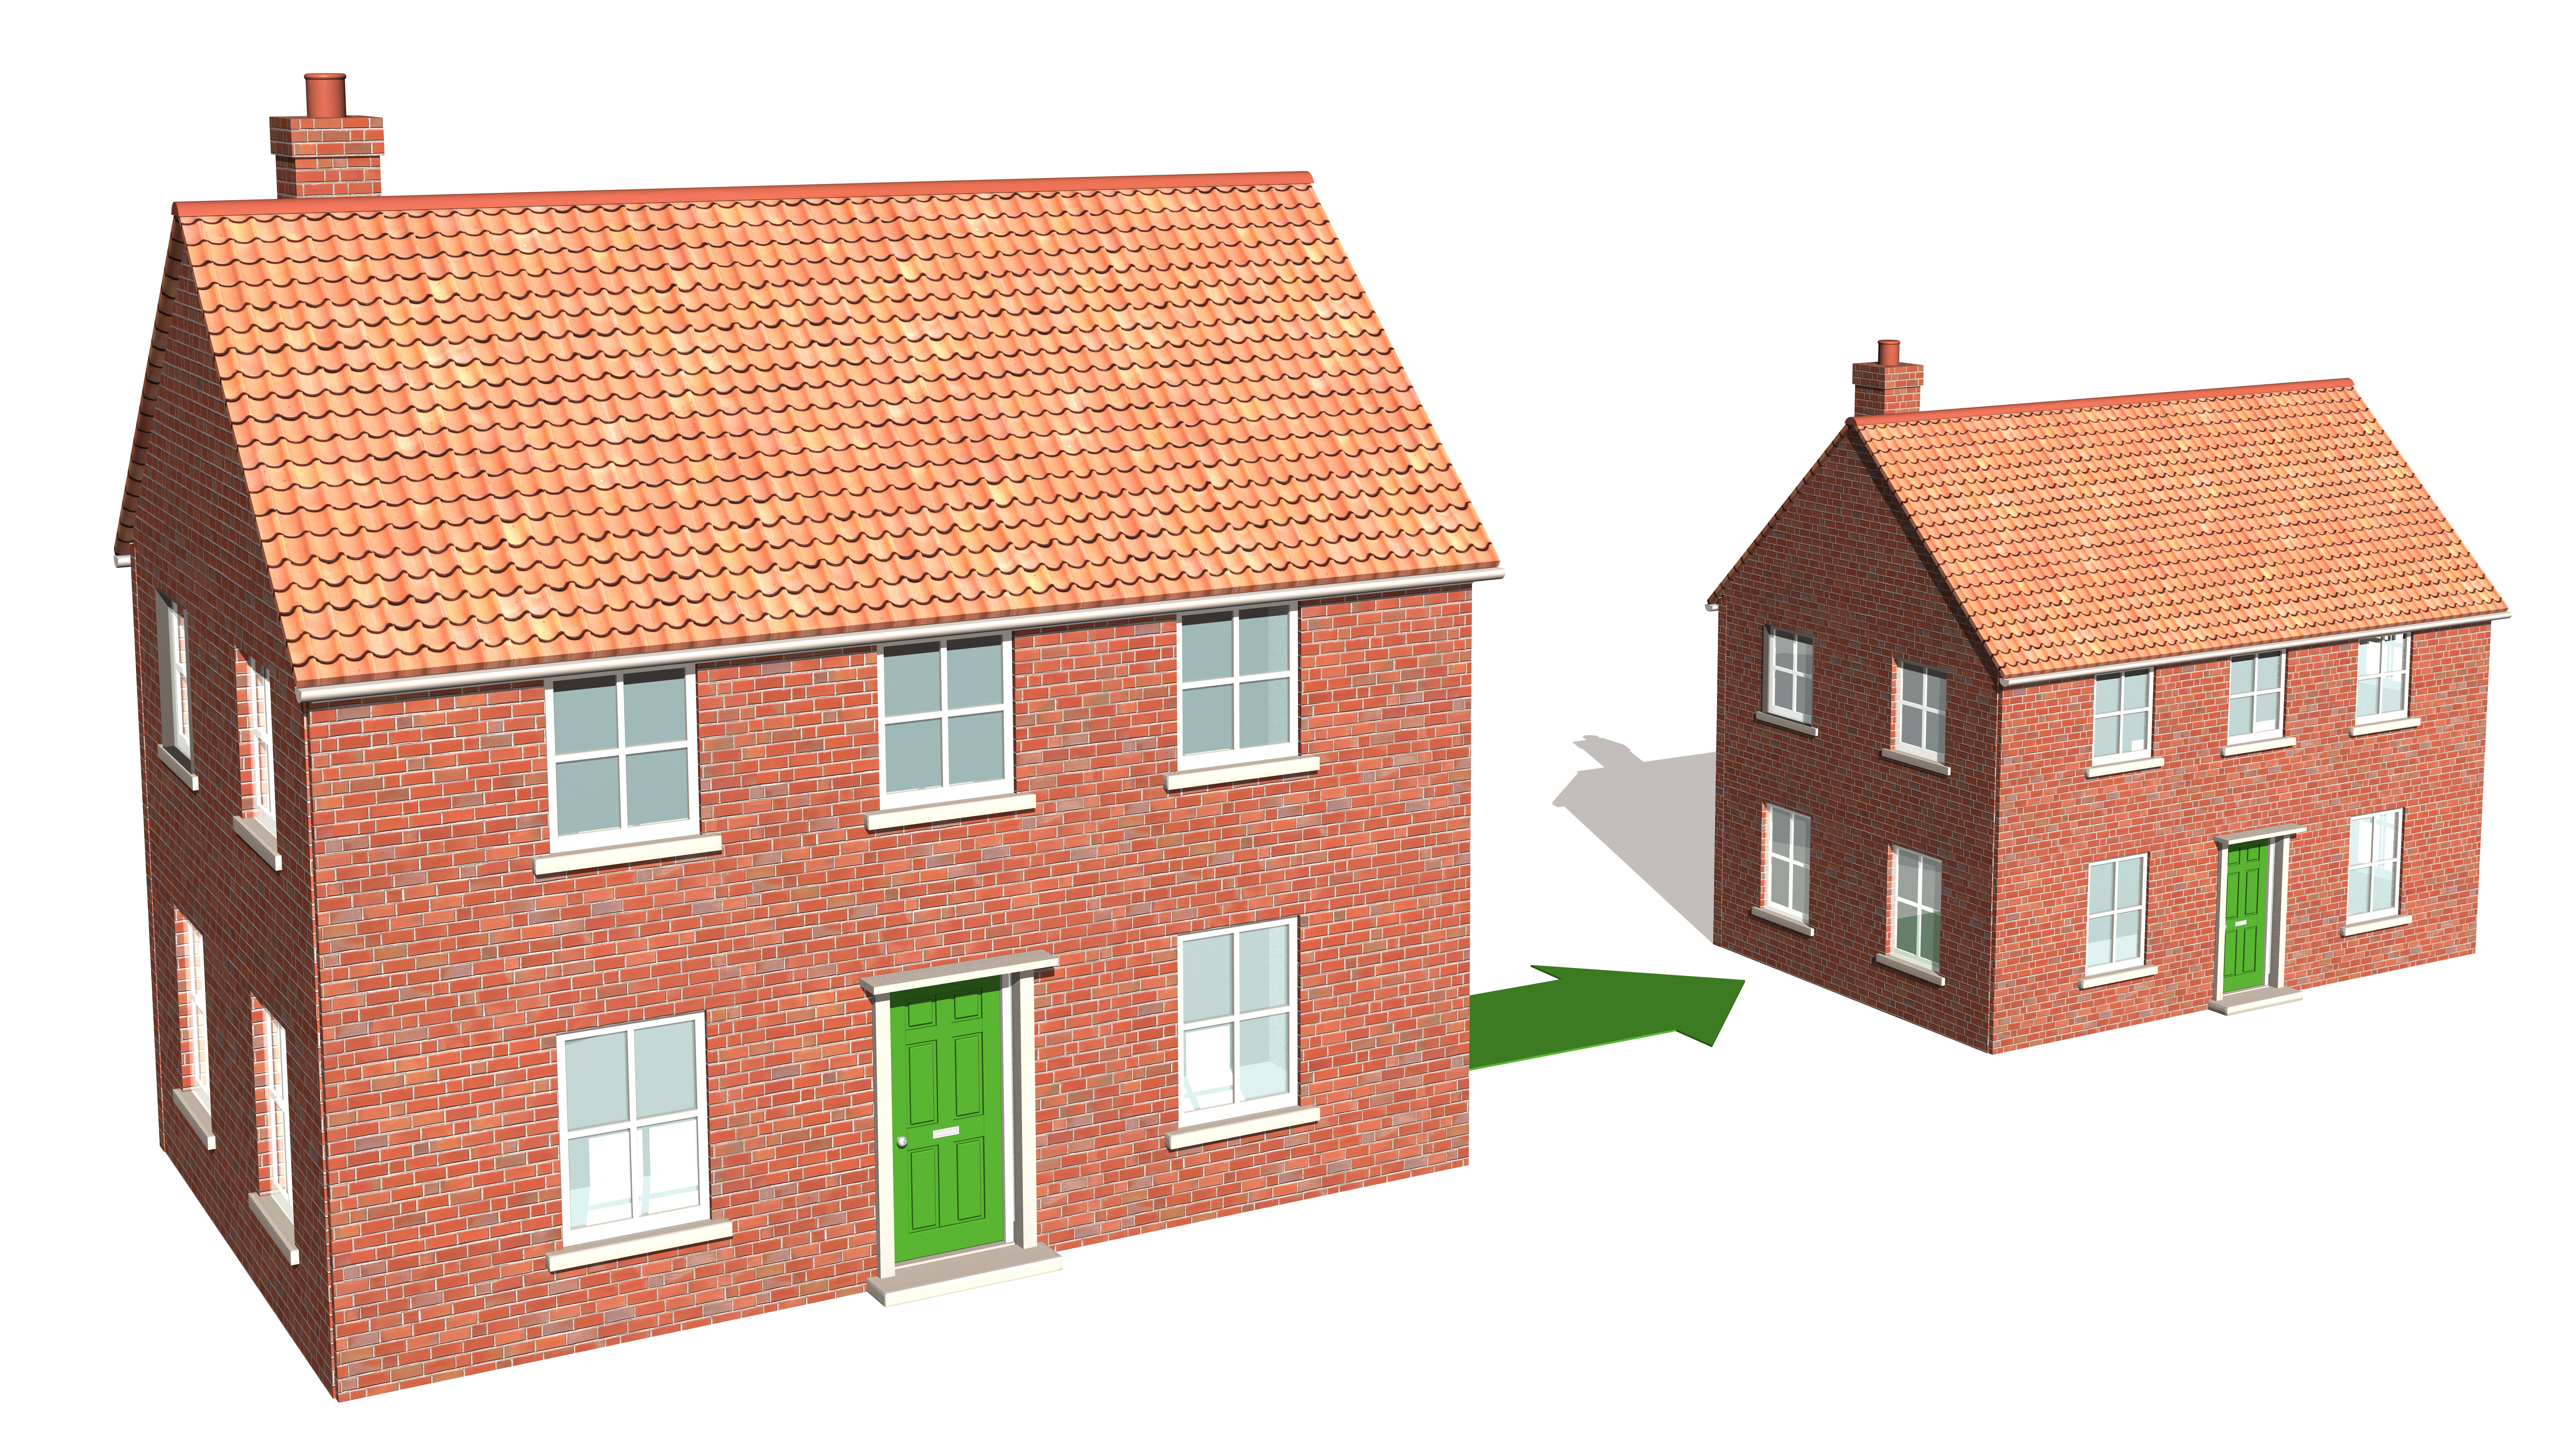 Downsizing how to move into a smaller home morgan for Downsize home plans